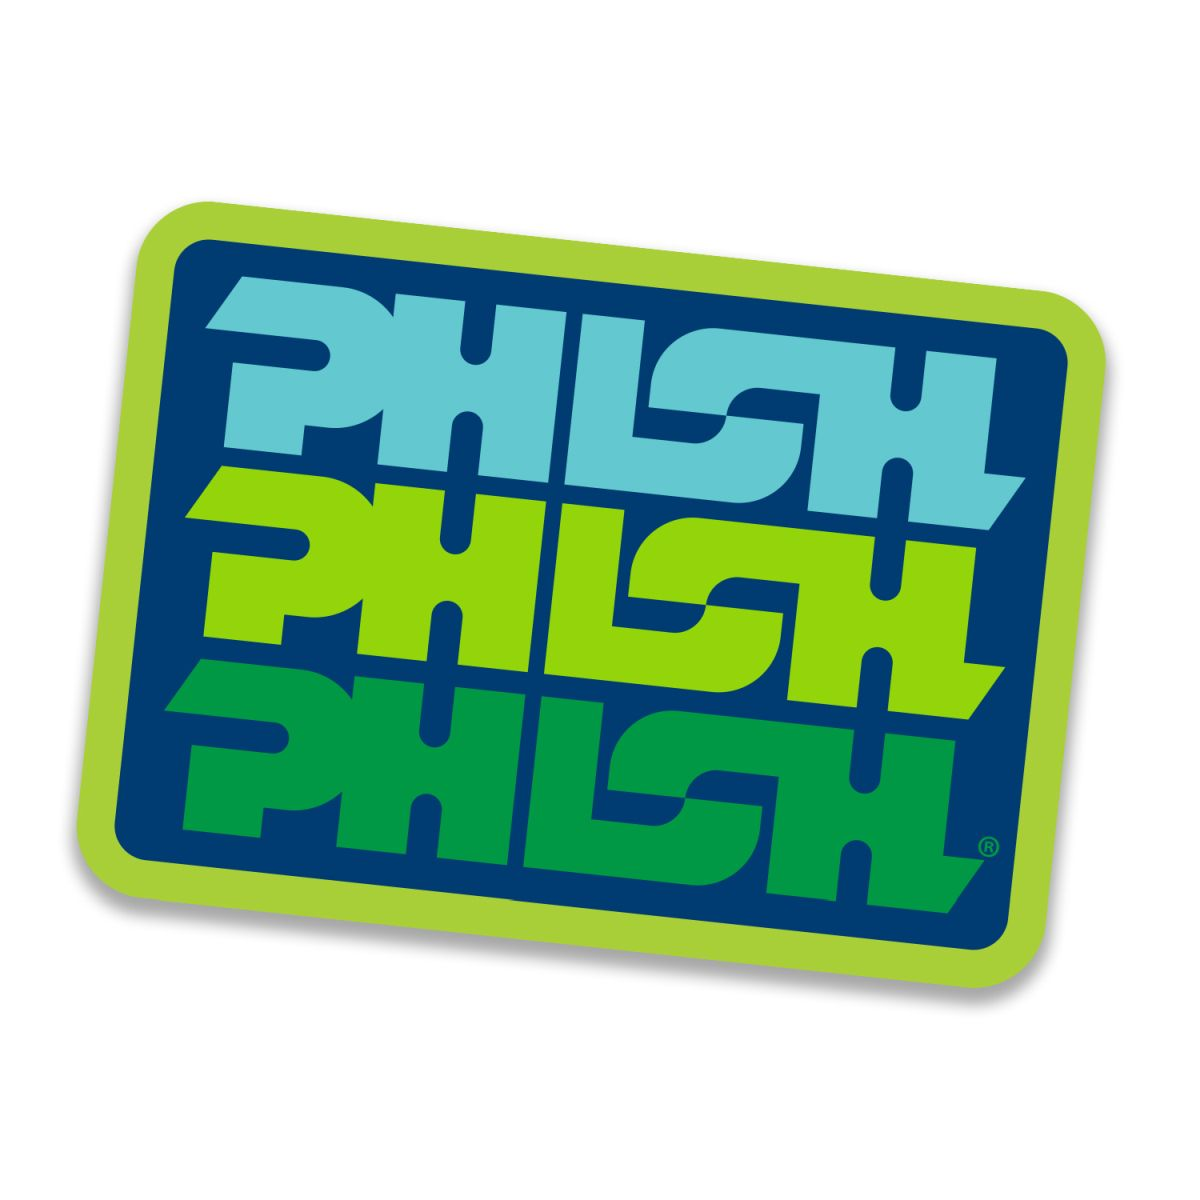 DDC x Phish Sticker